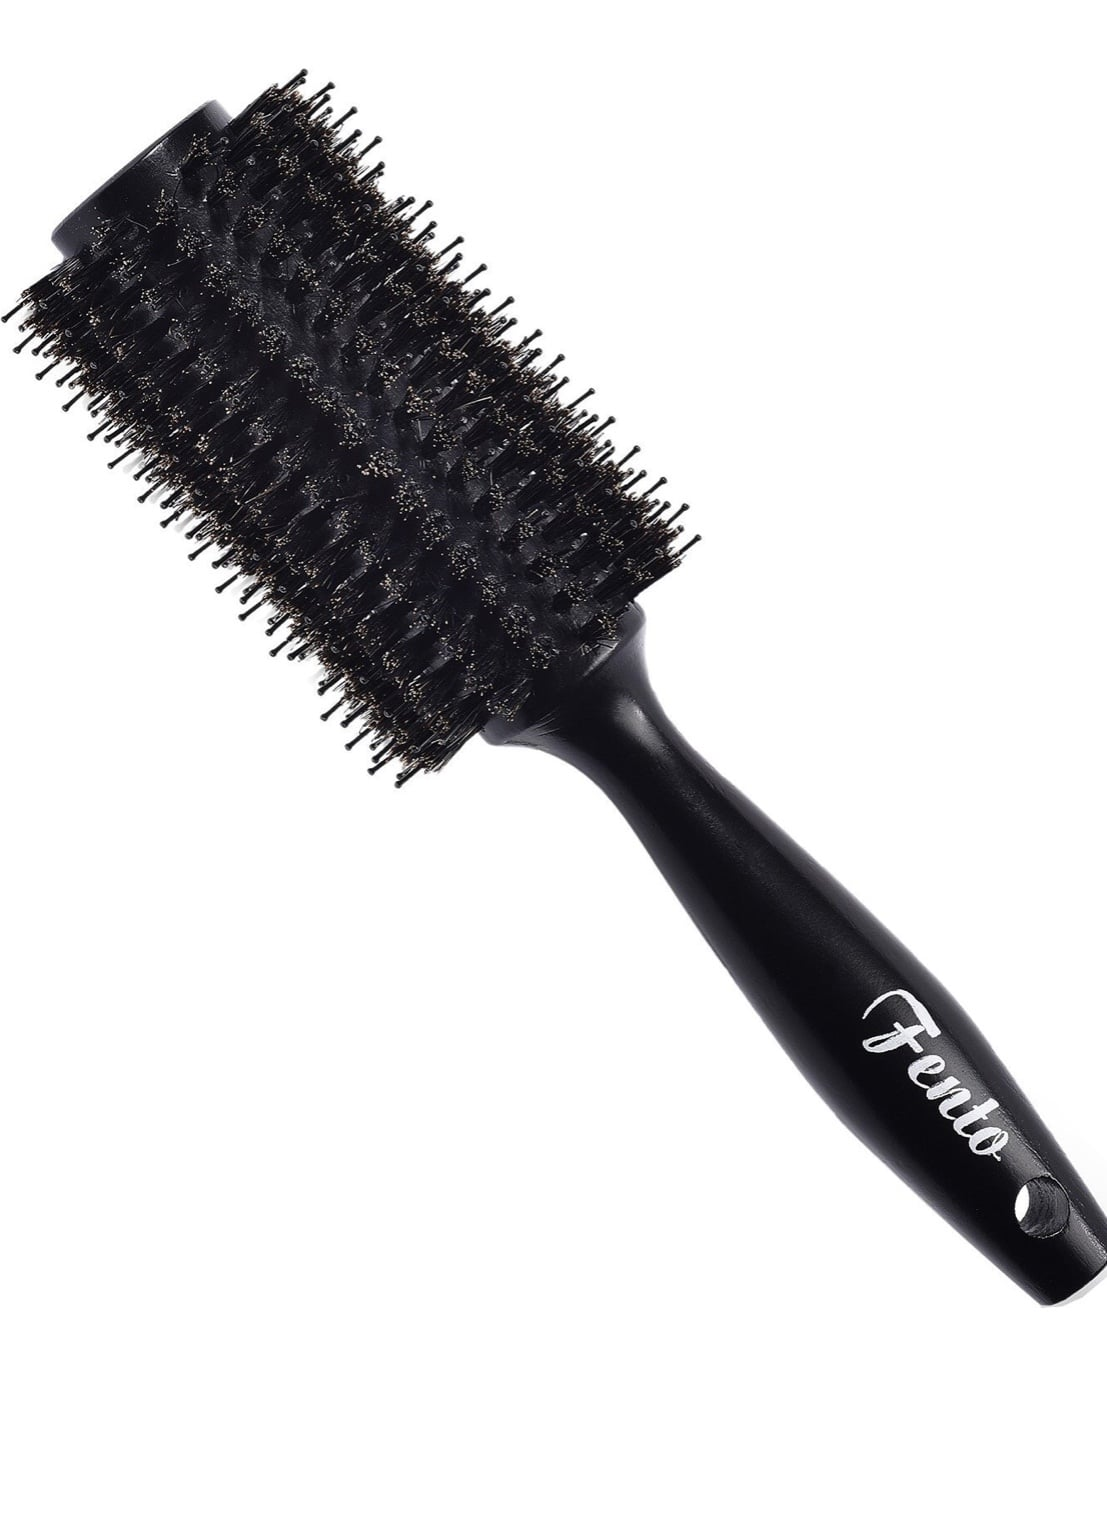 Boar Bristle Round Hair Brush $7.98 with FS with prime